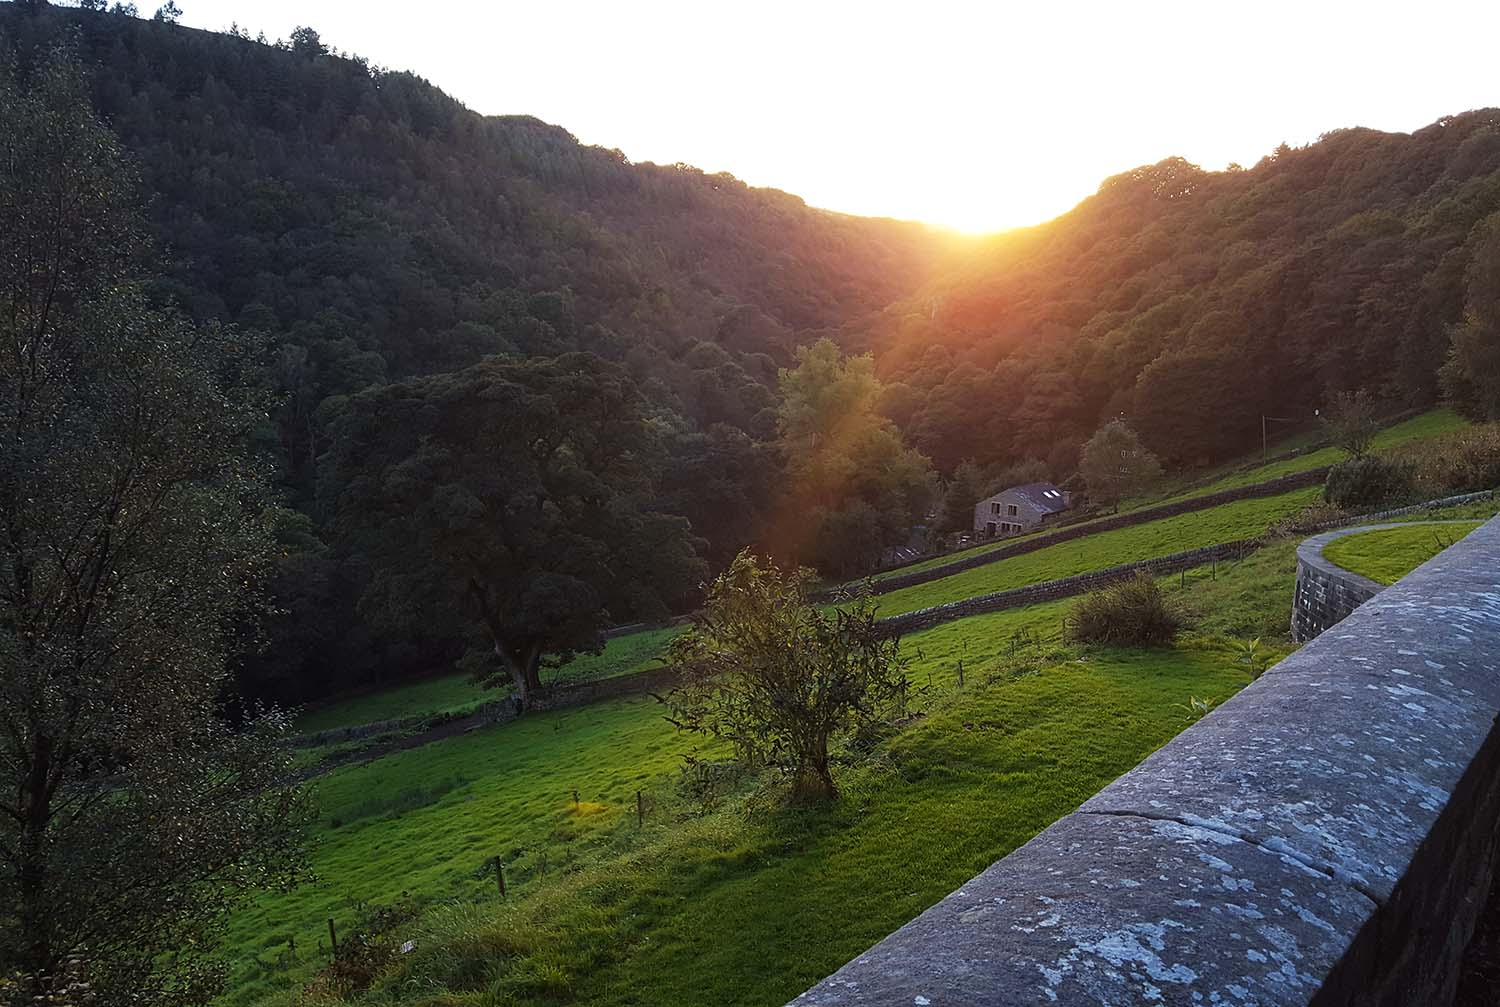 Sunset at the Ted Hughes house, Lumb Bank, October 16